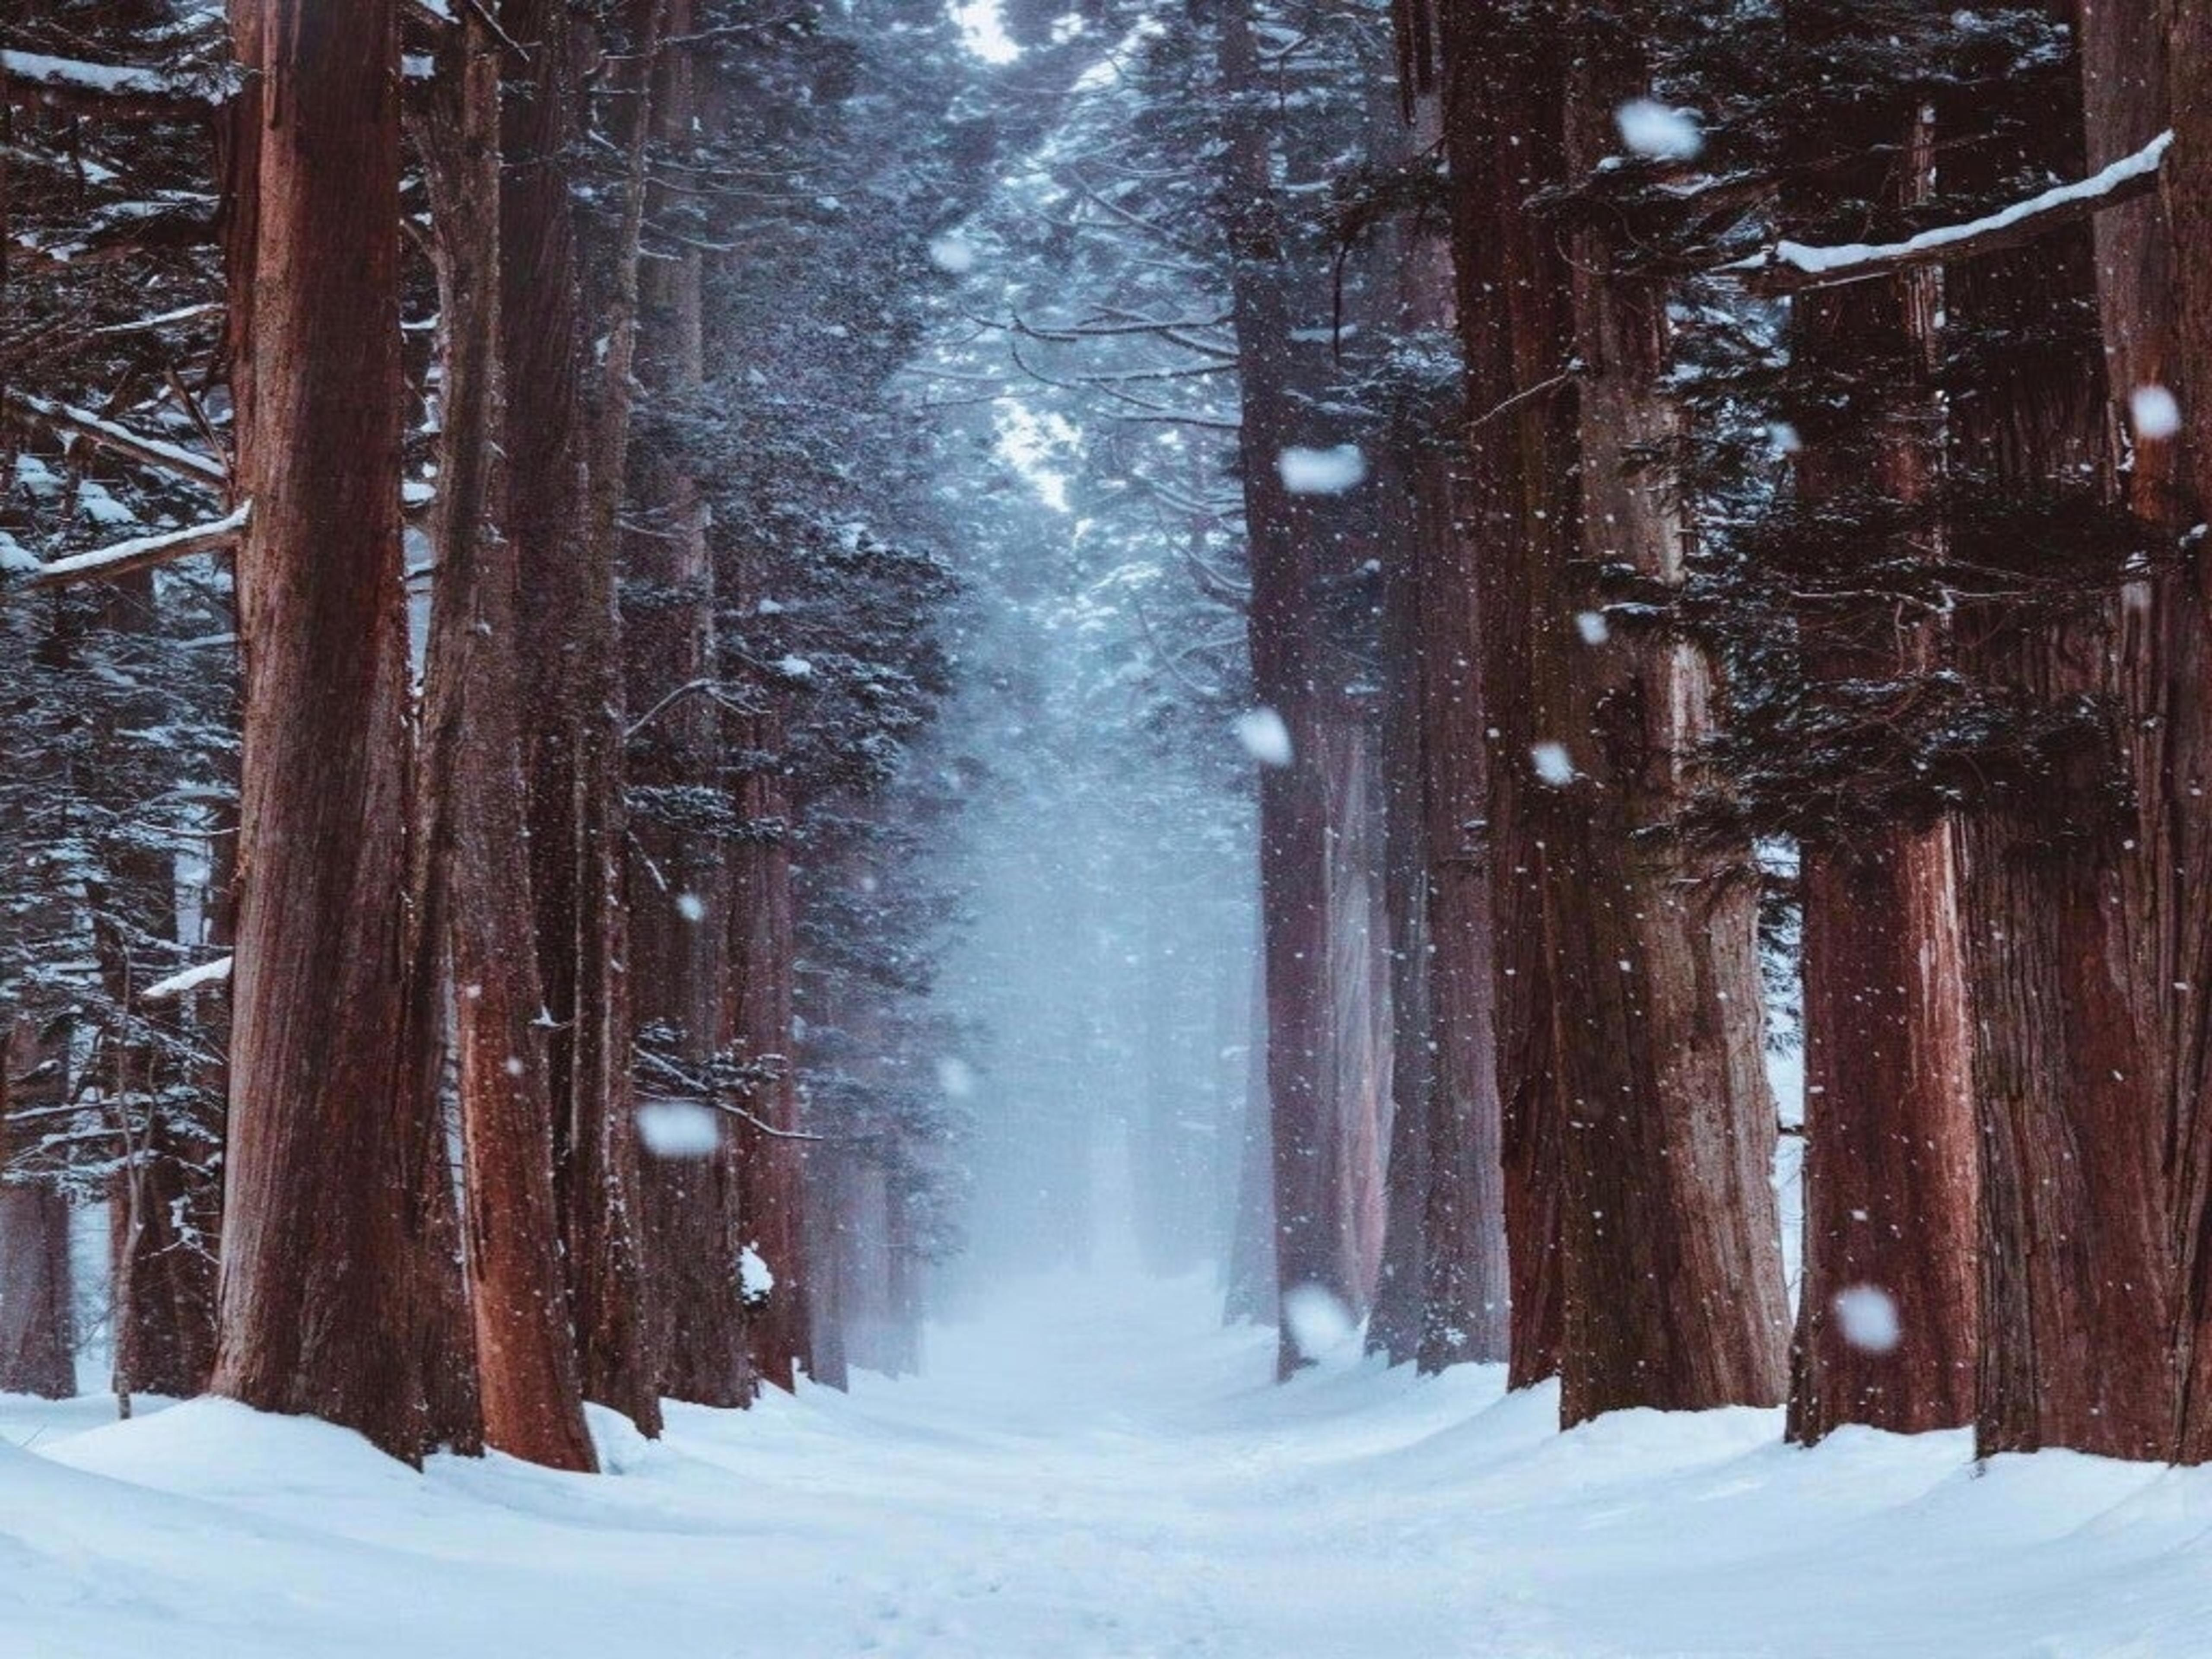 Snowy 4k Wallpapers For Your Desktop Or Mobile Screen Free